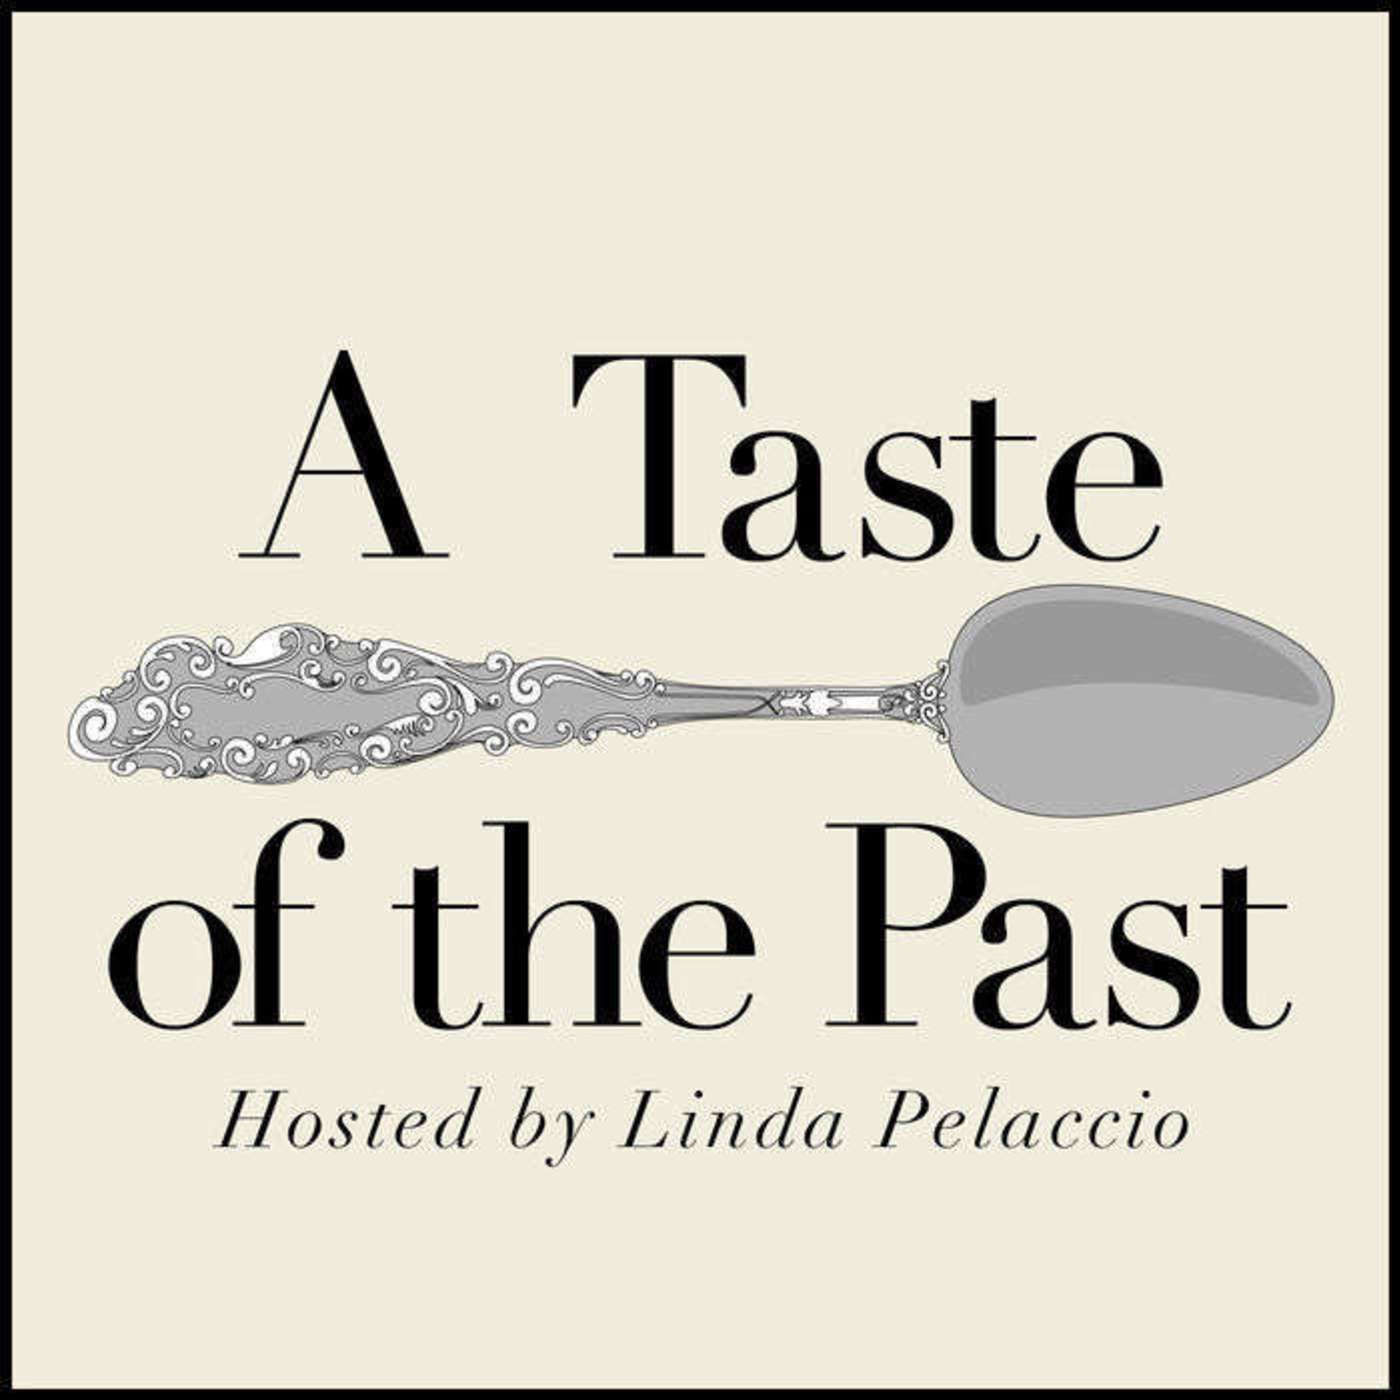 """Episode 117: Antonin Careme: """"King of Chefs and Chef of Kings"""" with Eric Lanlard, British Celebrity Pastry Chef"""